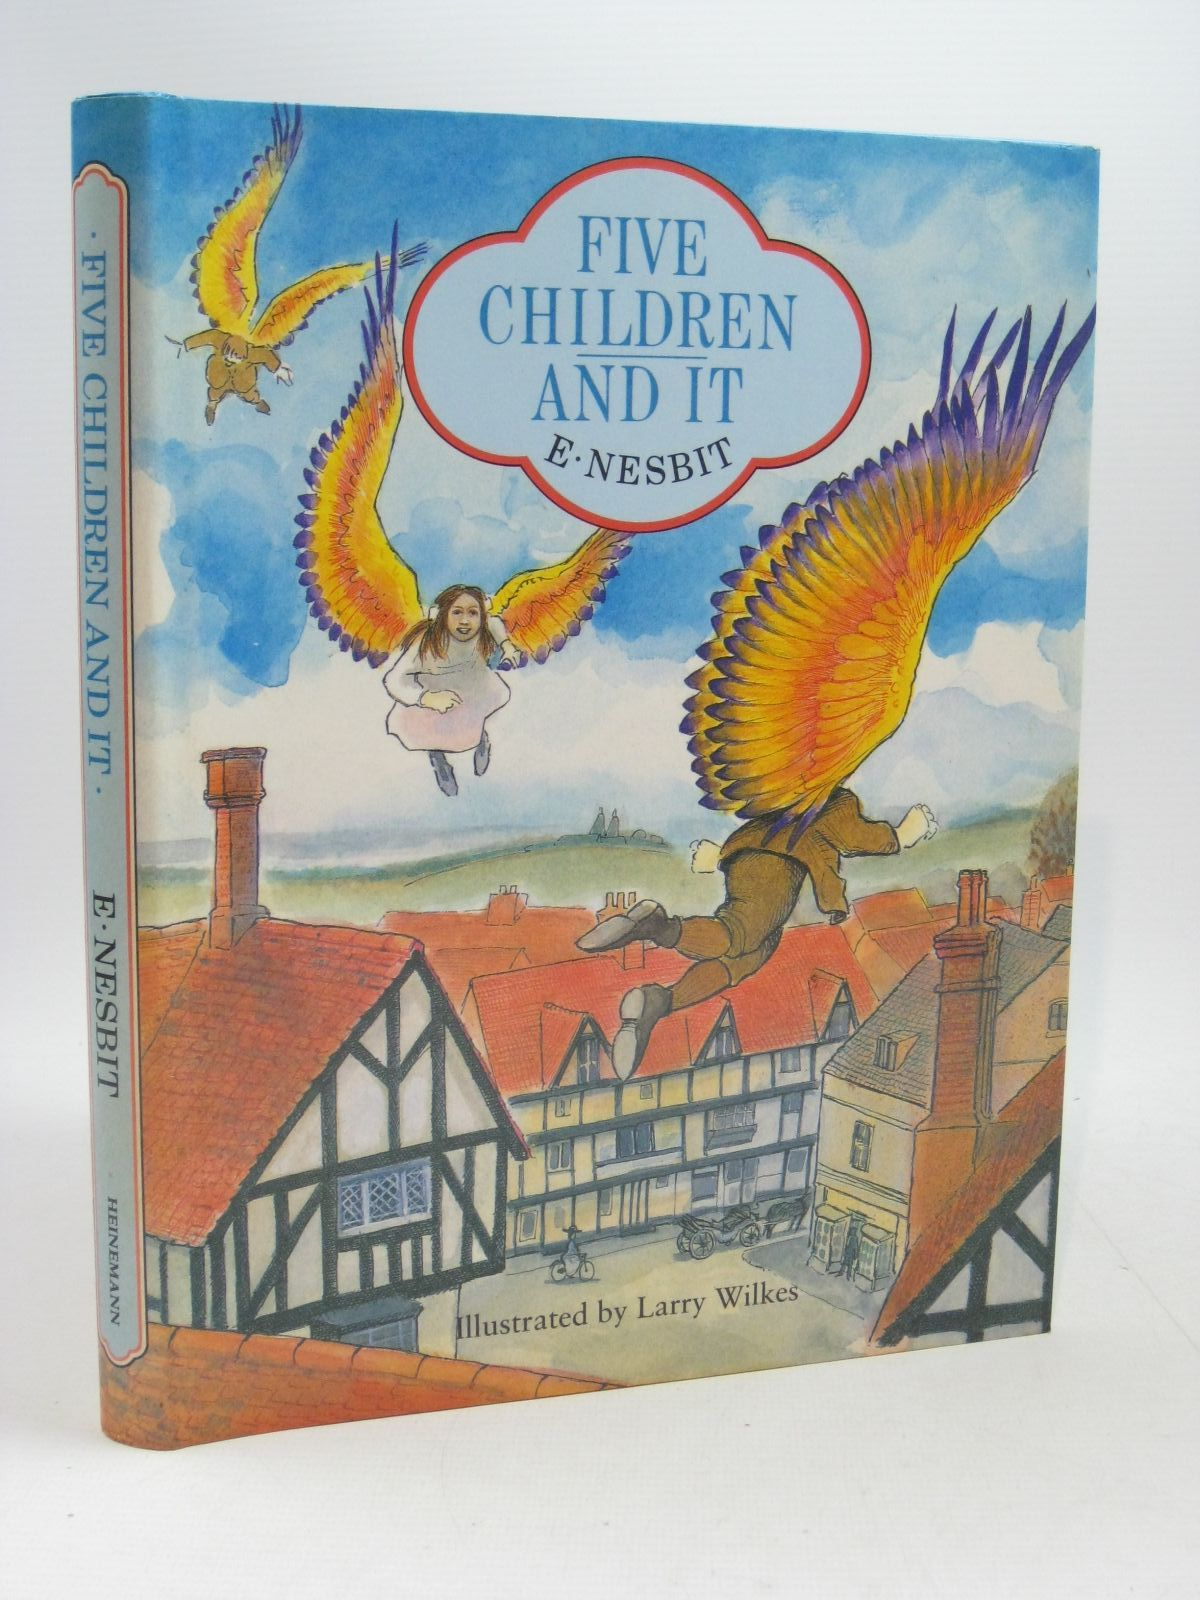 Photo of FIVE CHILDREN AND IT written by Nesbit, E. illustrated by Wilkes, Larry published by Heinemann (STOCK CODE: 1504615)  for sale by Stella & Rose's Books